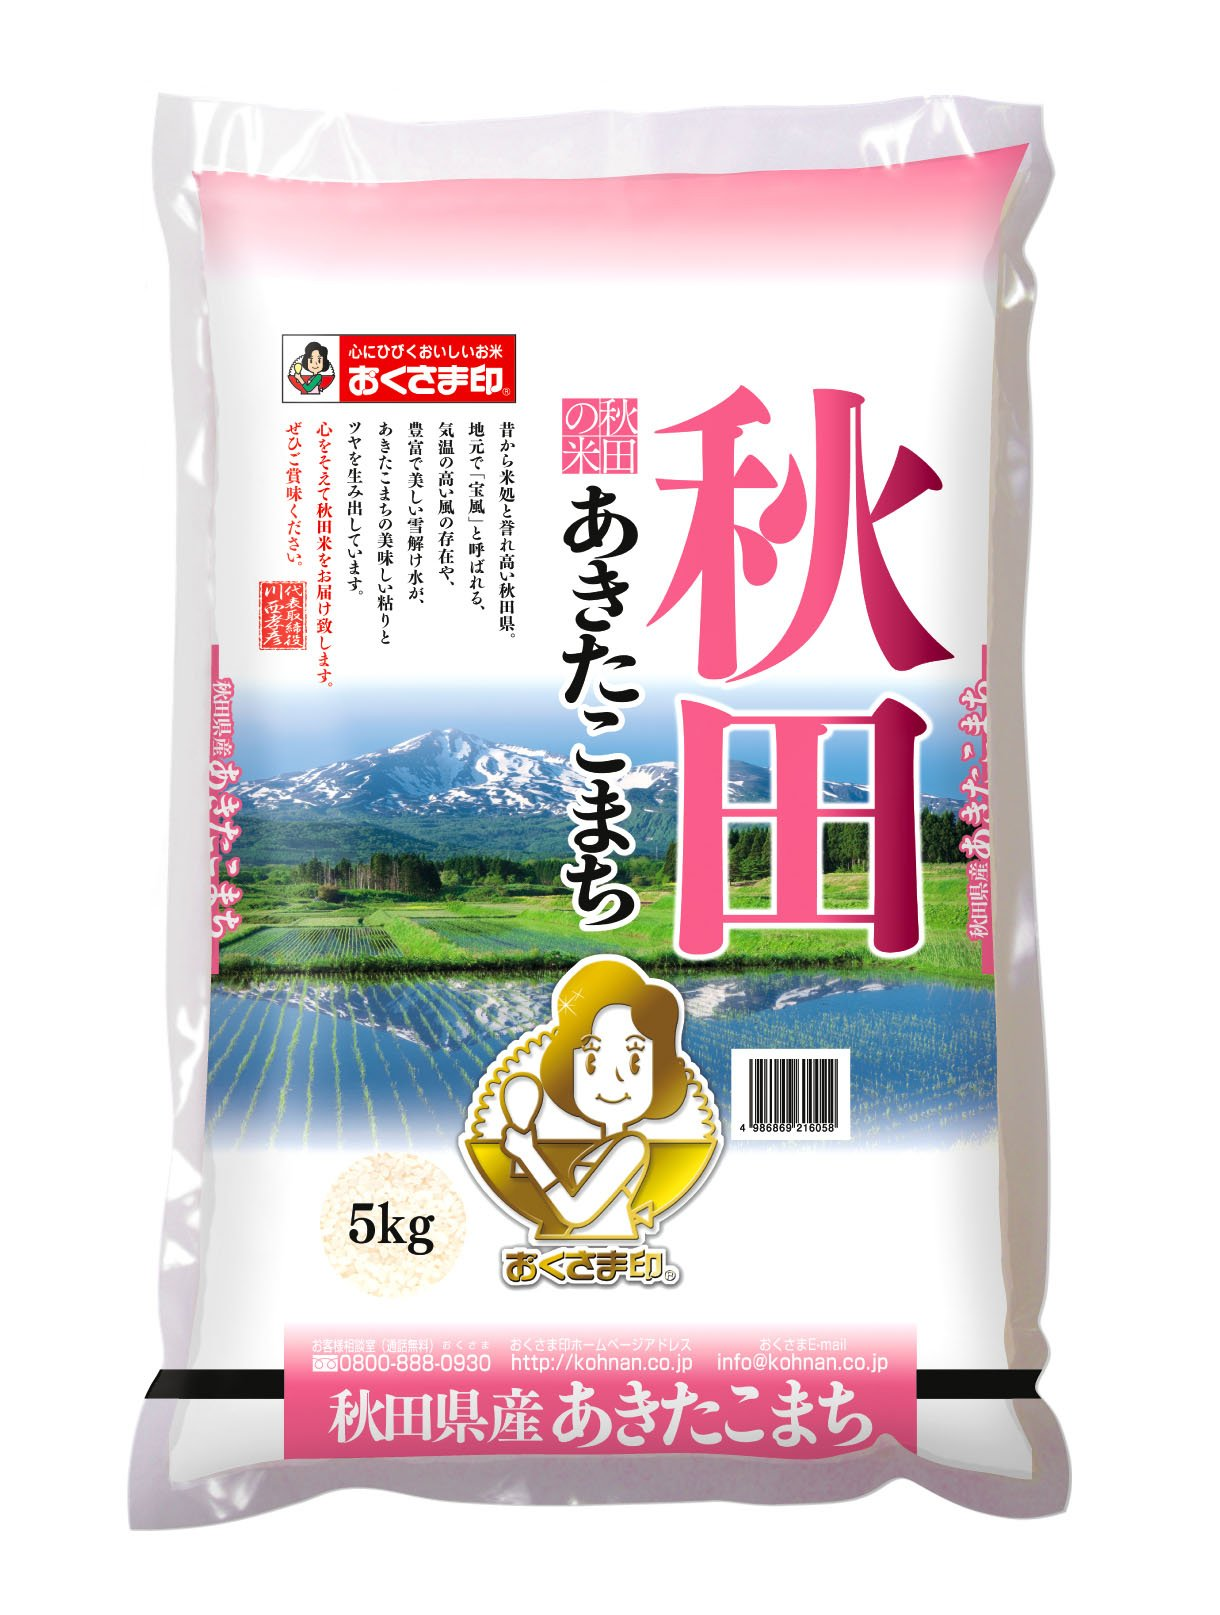 [Rice] Akita Prefecture rice Akitakomachi 5kg 2014 annual production